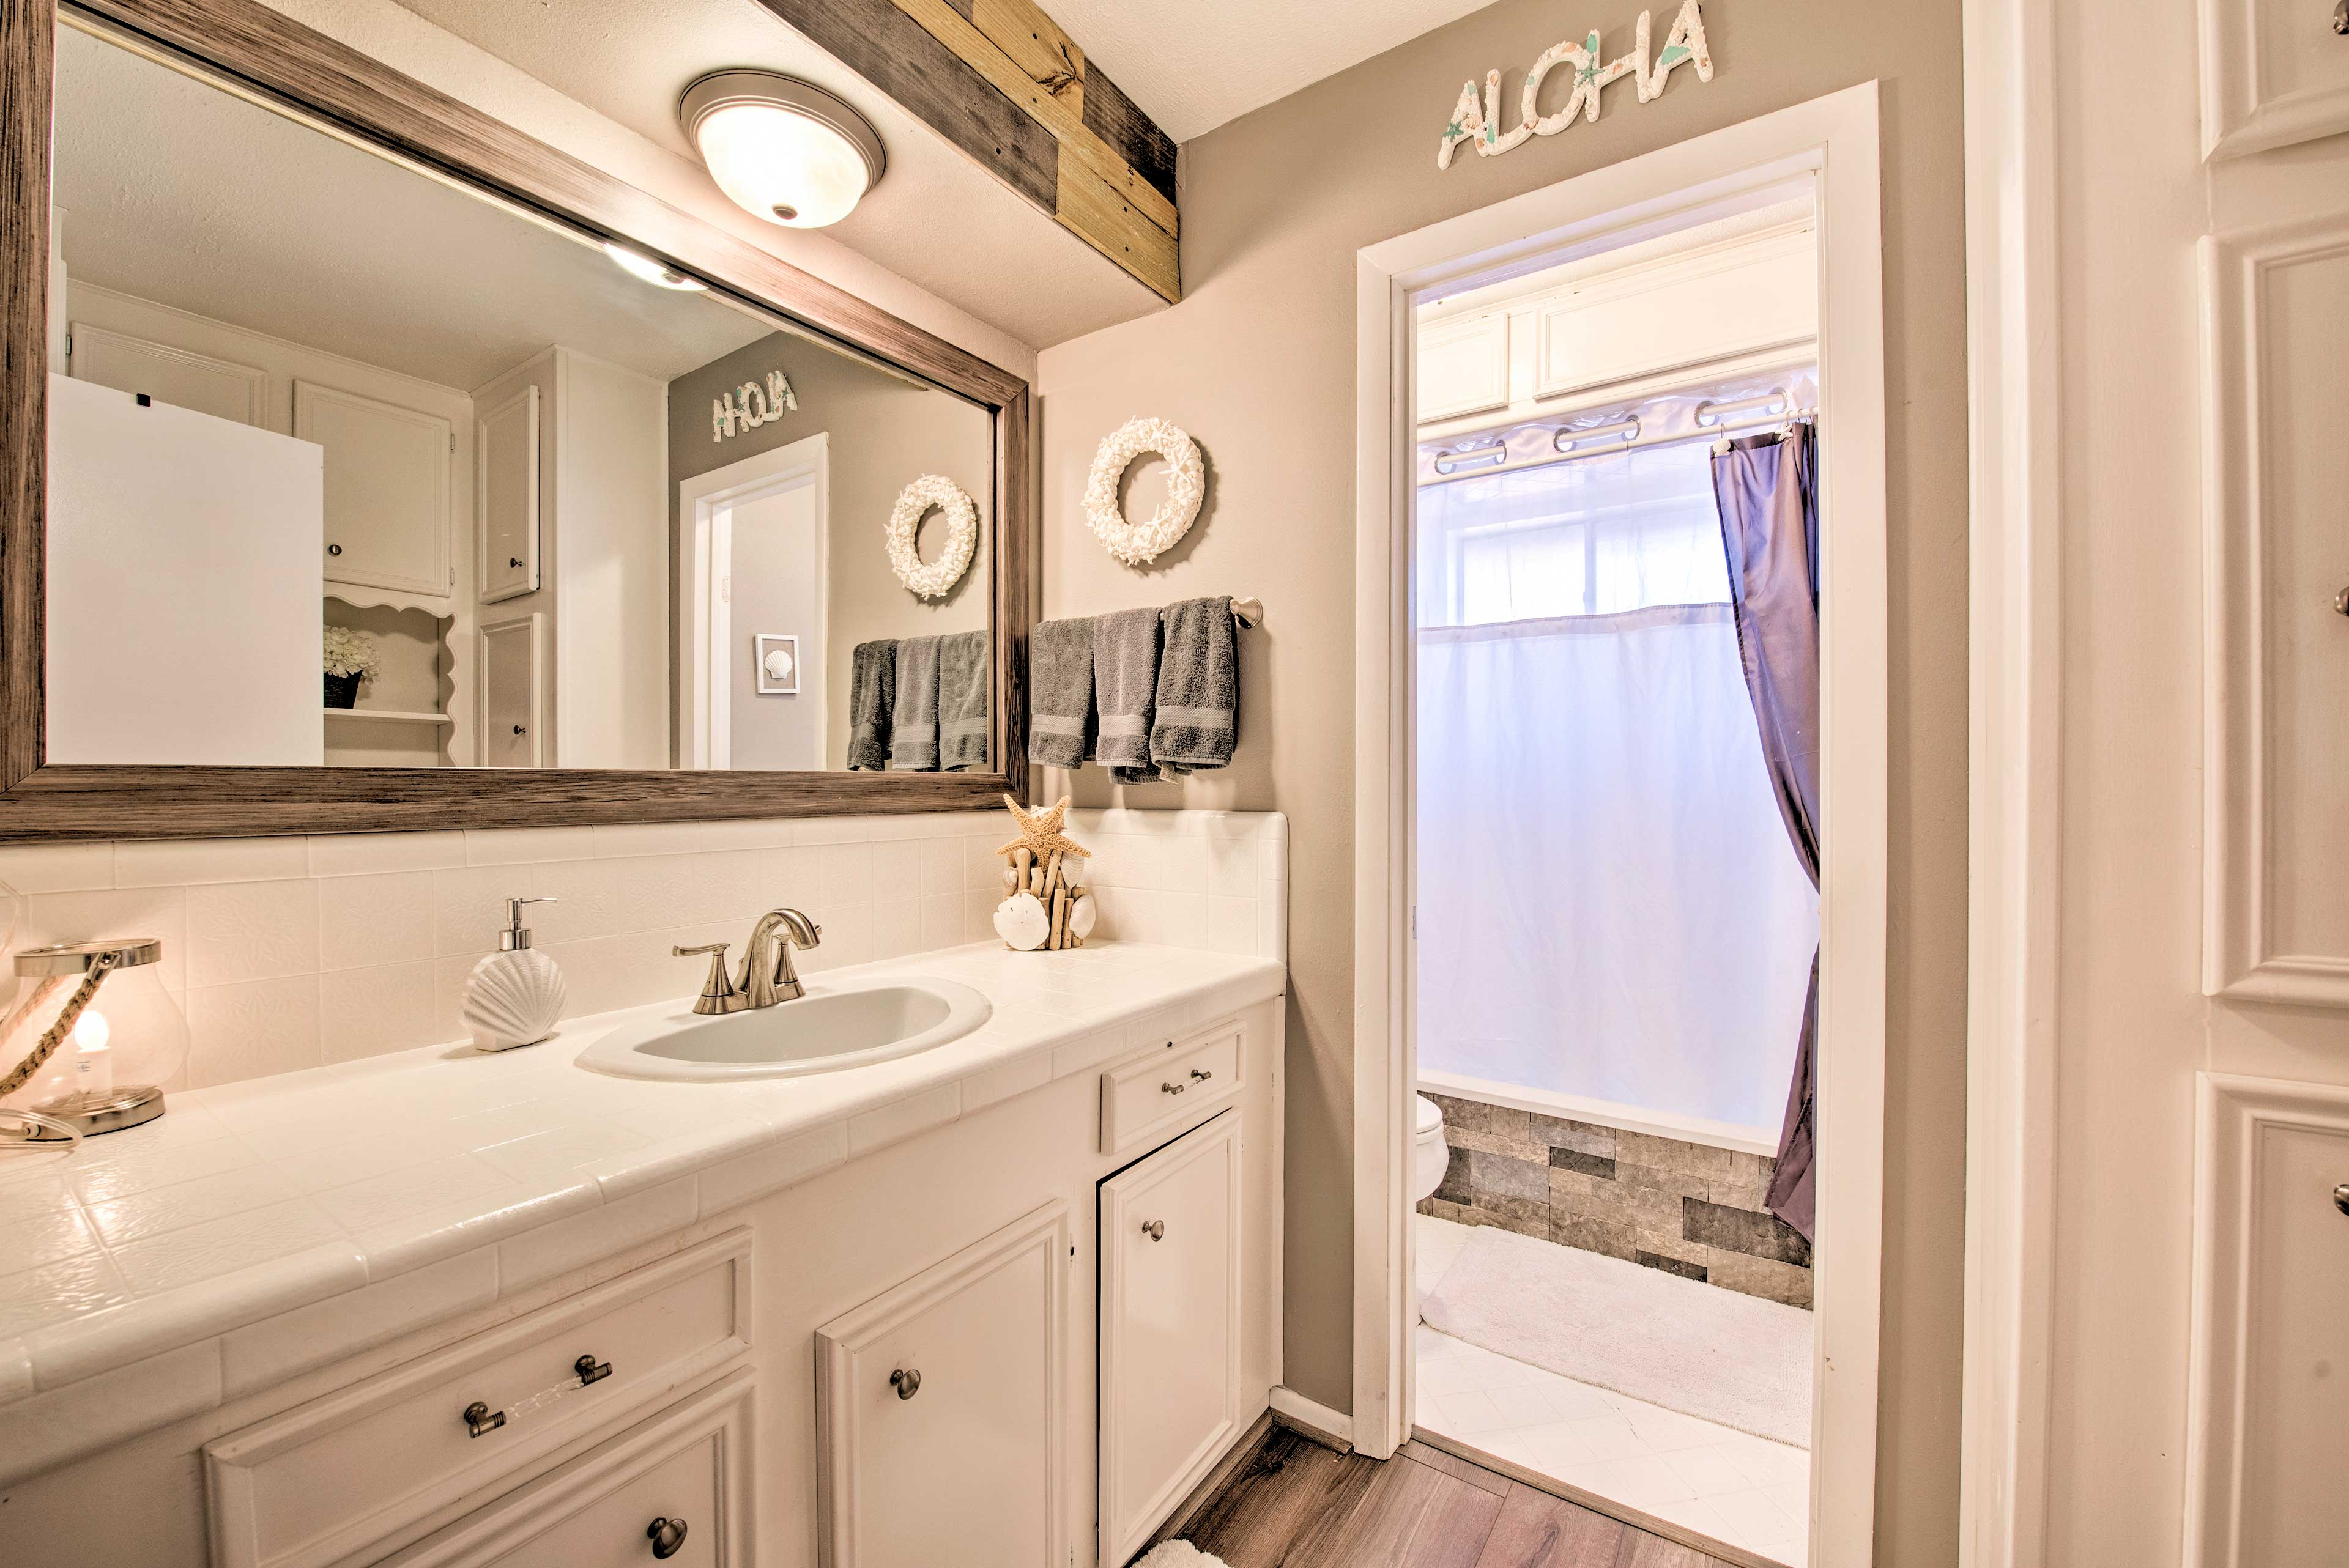 With the separated bathroom and vanity, everyone is able to get ready at once!